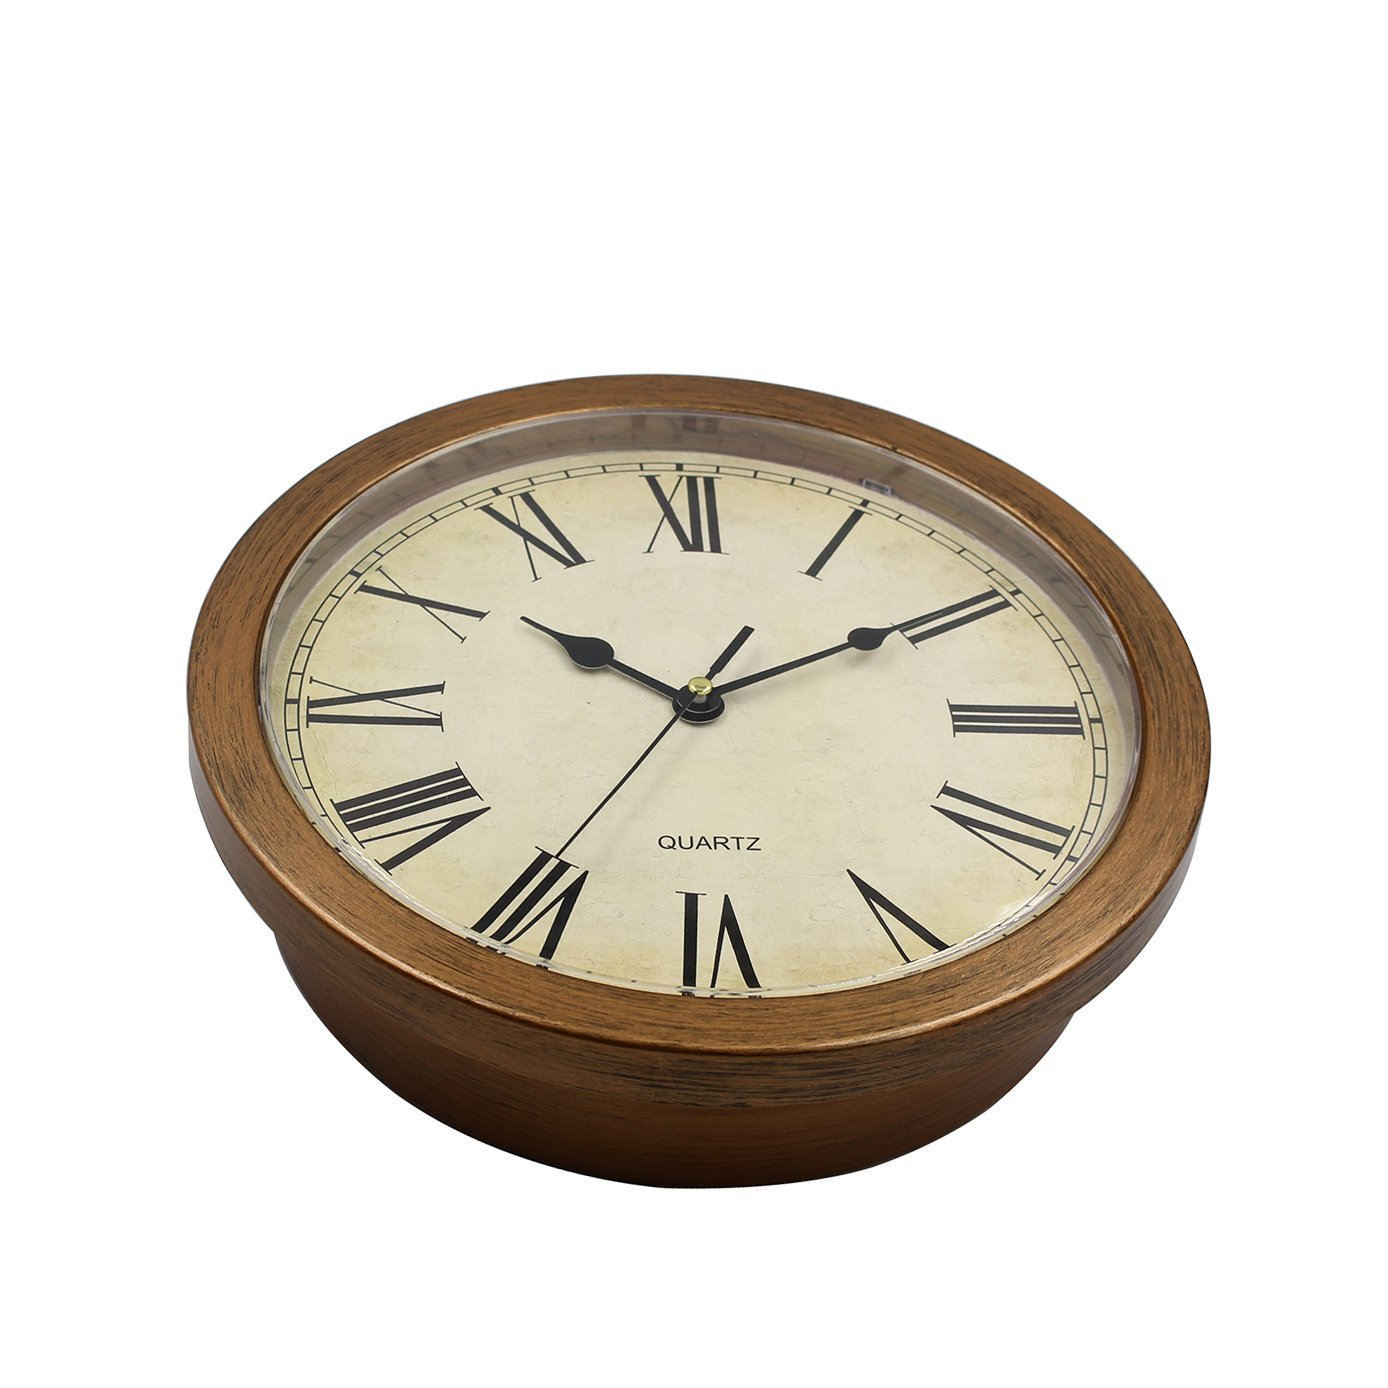 Amazon magho plastic wall clock with secret compartment as amazon magho plastic wall clock with secret compartment as hidden safe for money jewelry stashing 10 wood grain home kitchen amipublicfo Gallery